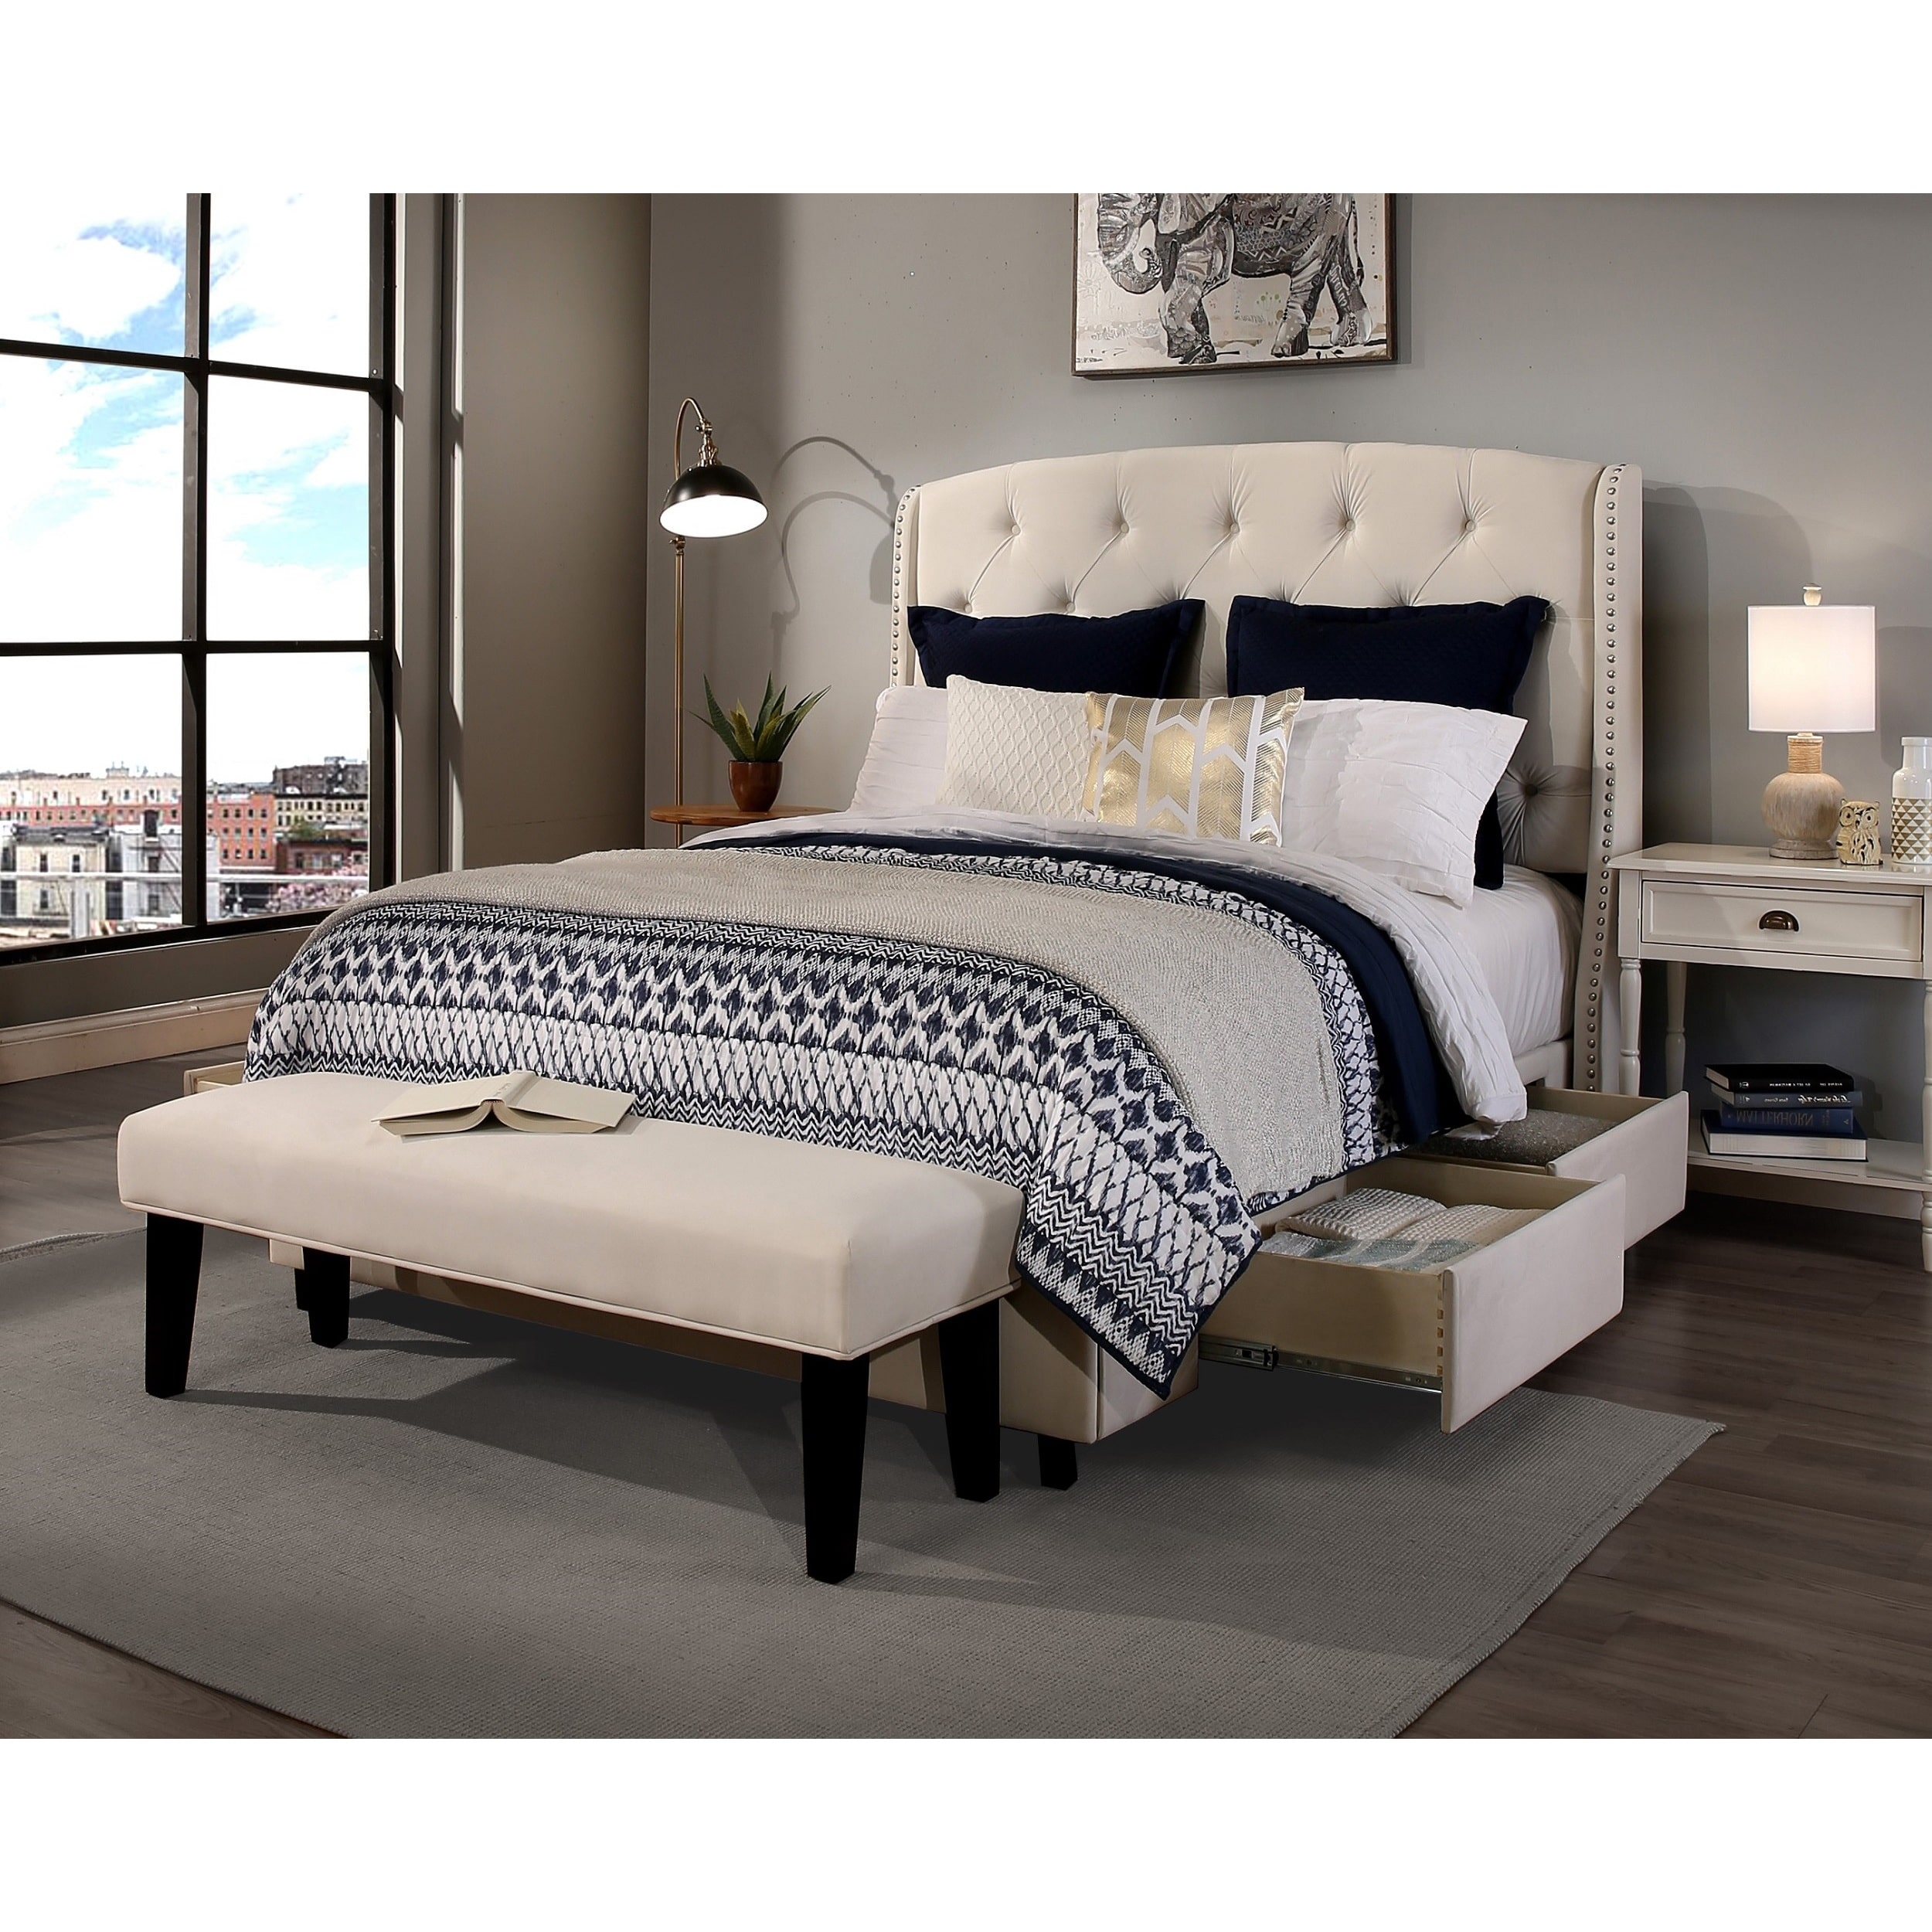 Republic Design House Peyton Upholstered Storage Bed